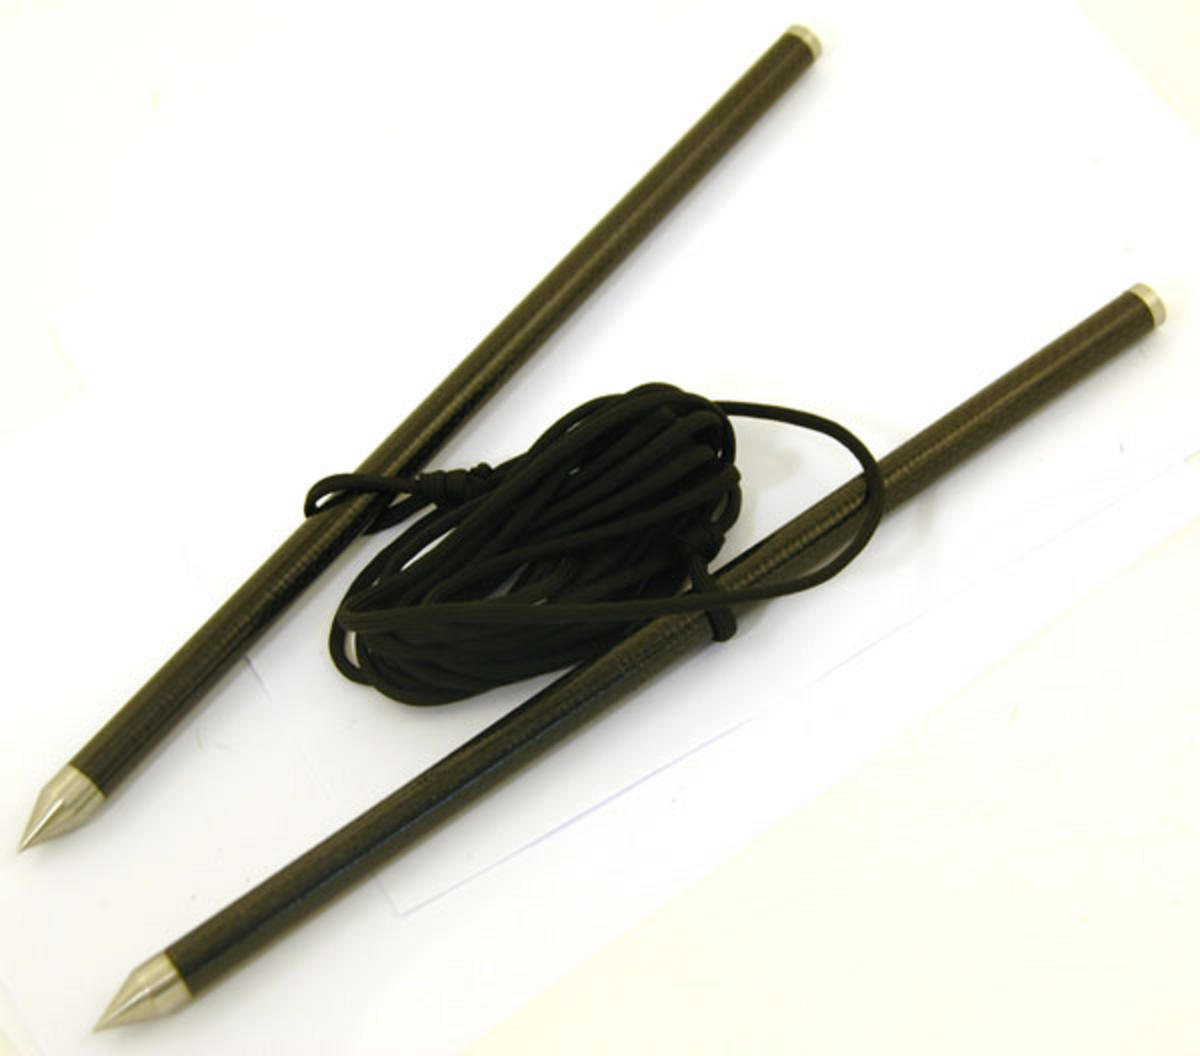 BISON CARBON FIBRE DISTANCE MARKER ROD CARP FISHING SPOD MEASURING STICKS